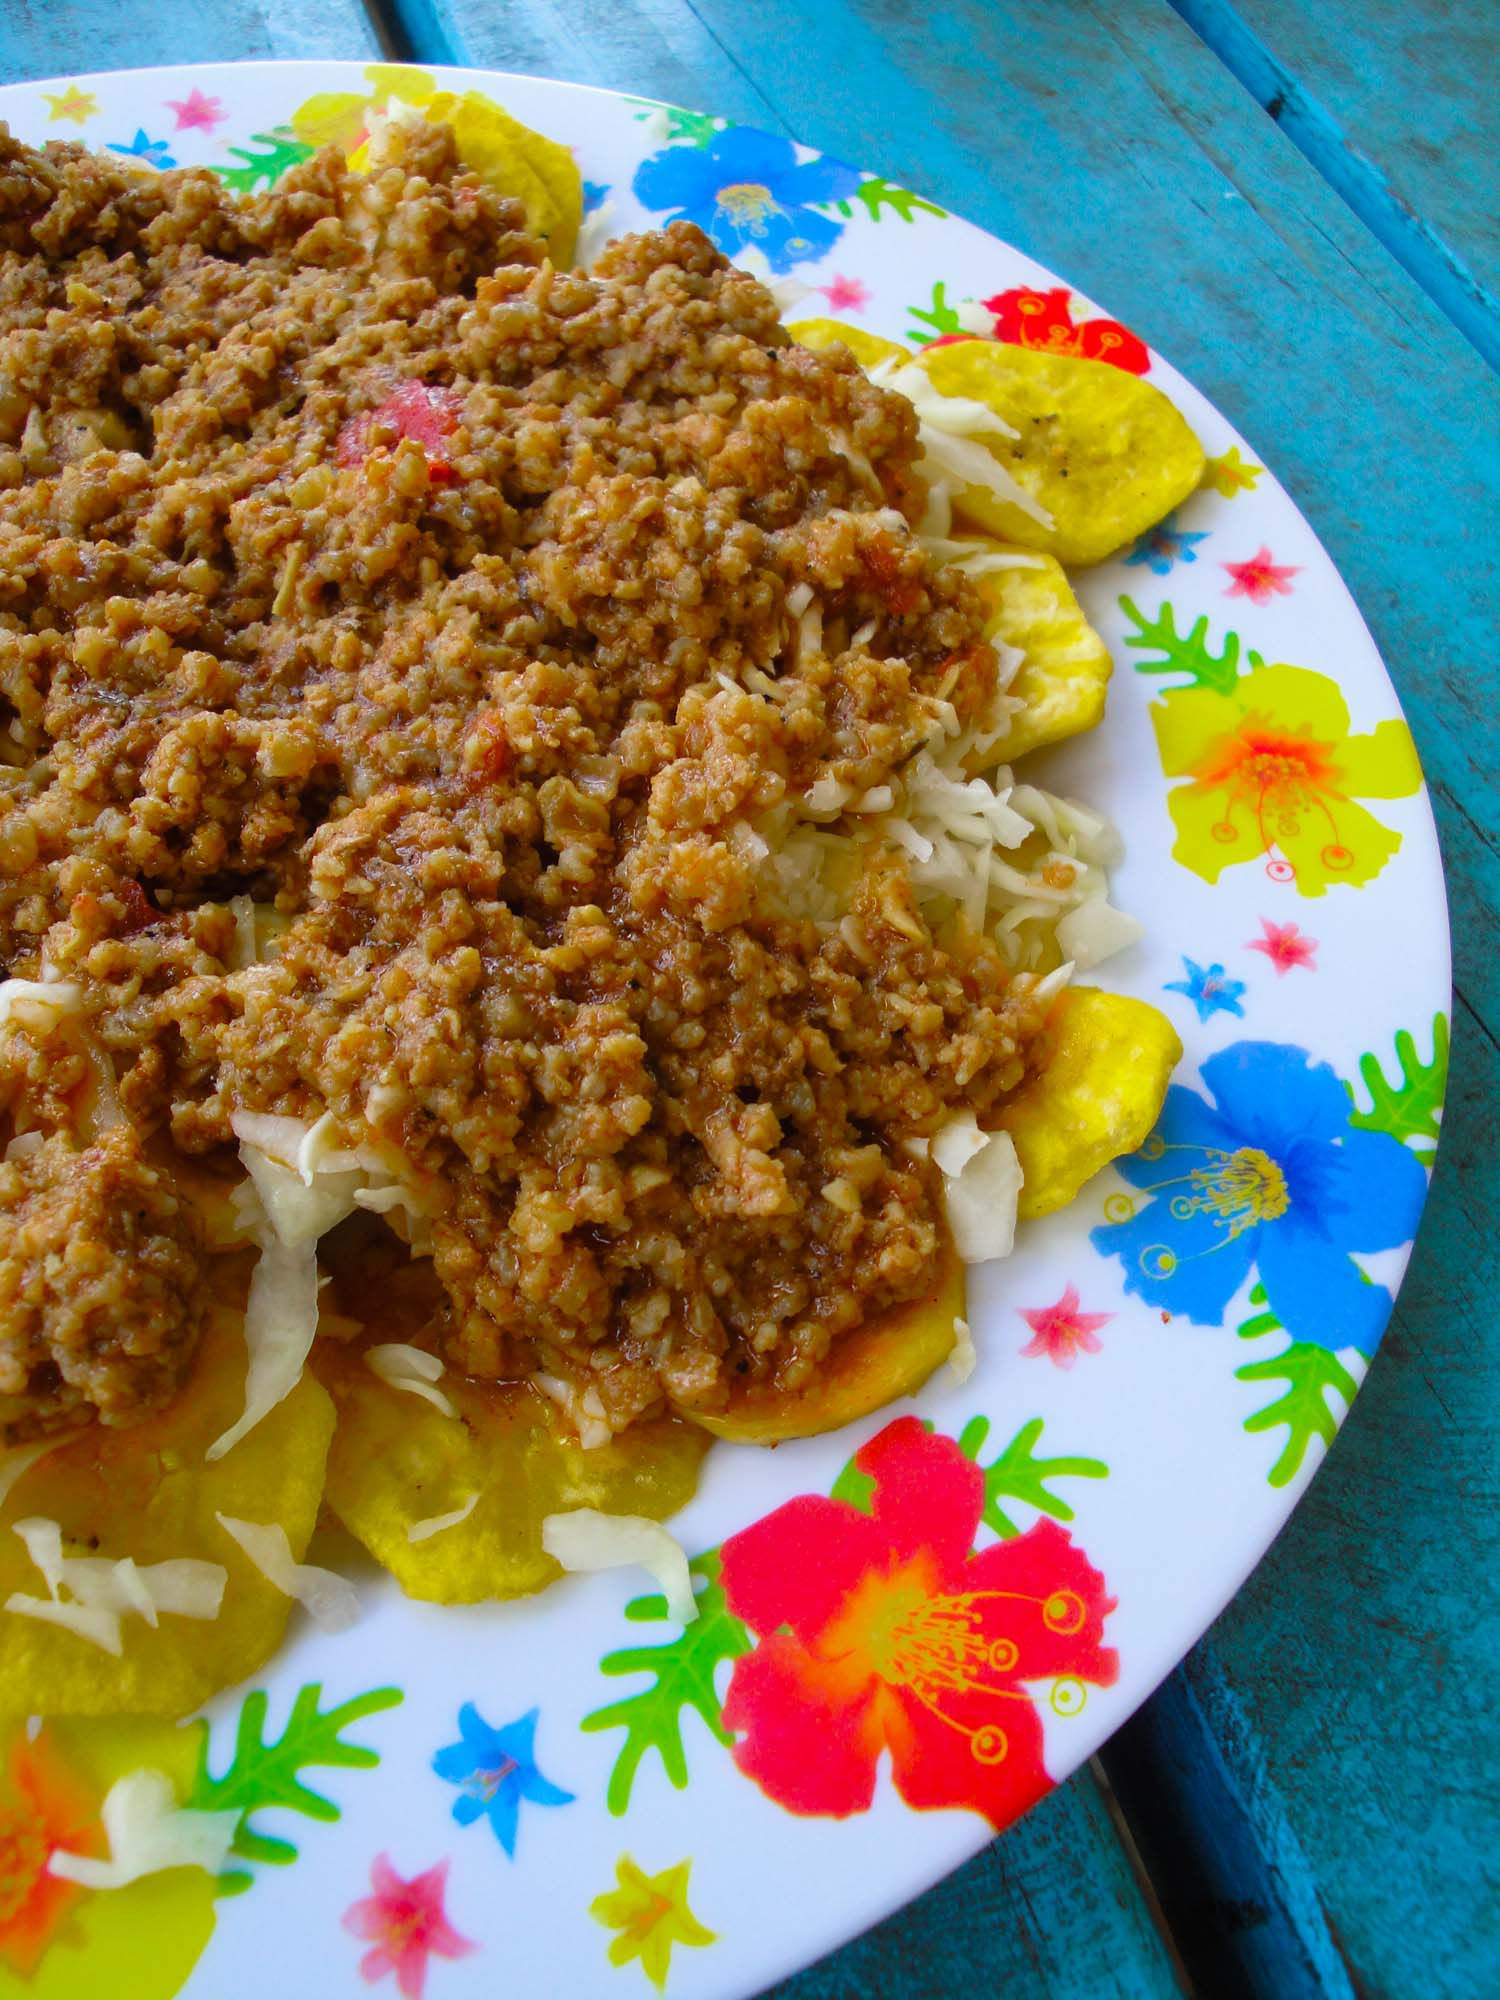 Tajadas are typical Honduran cuisine and one of the many dishes you must try in Honduras.